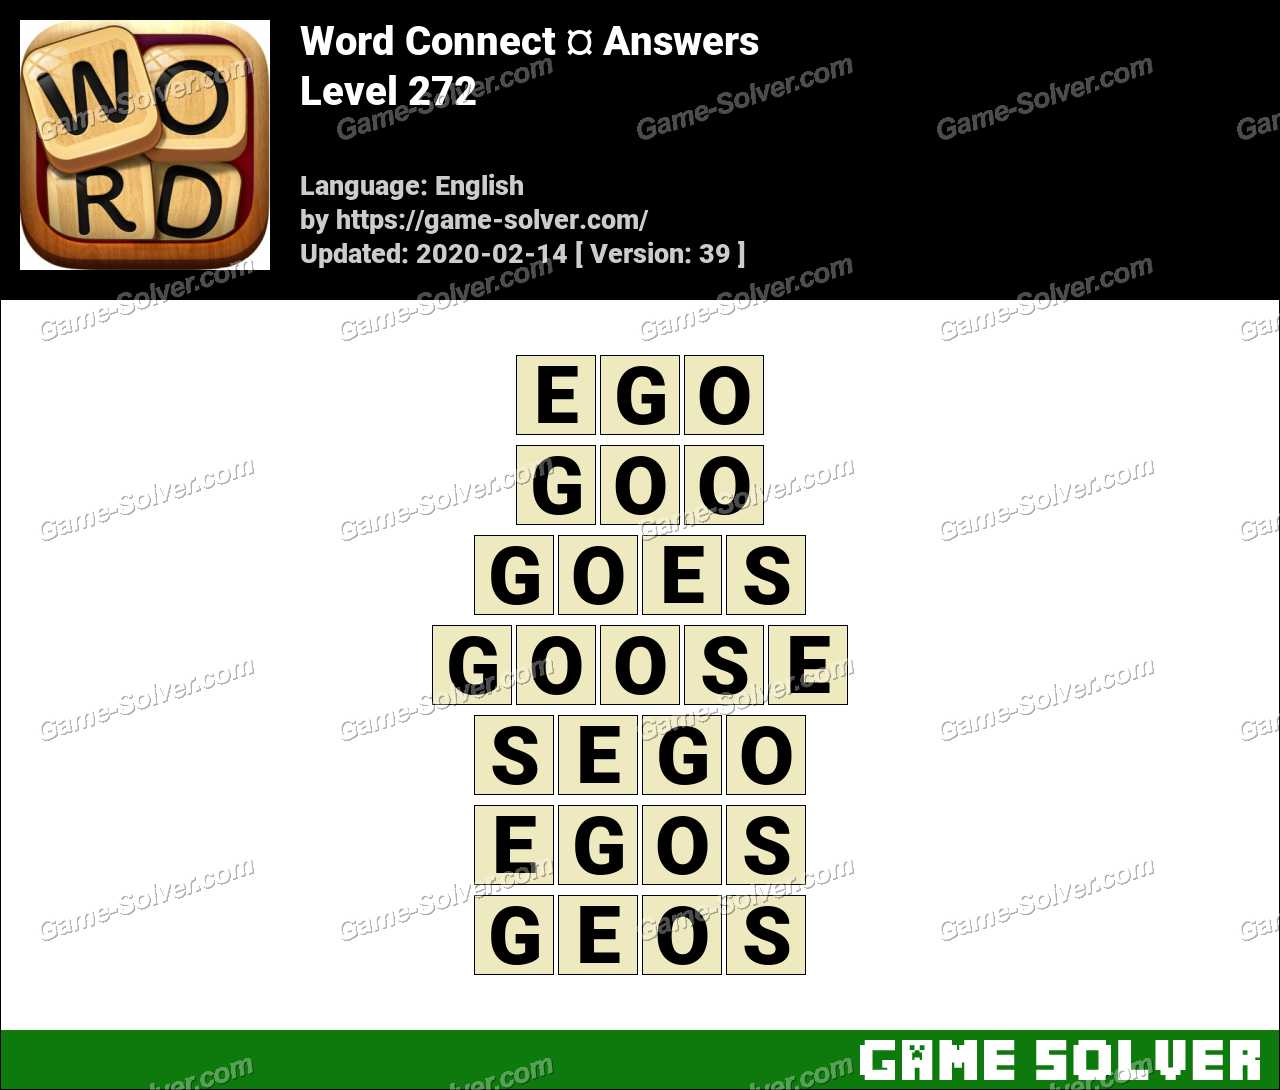 Word Connect Level 272 Answers